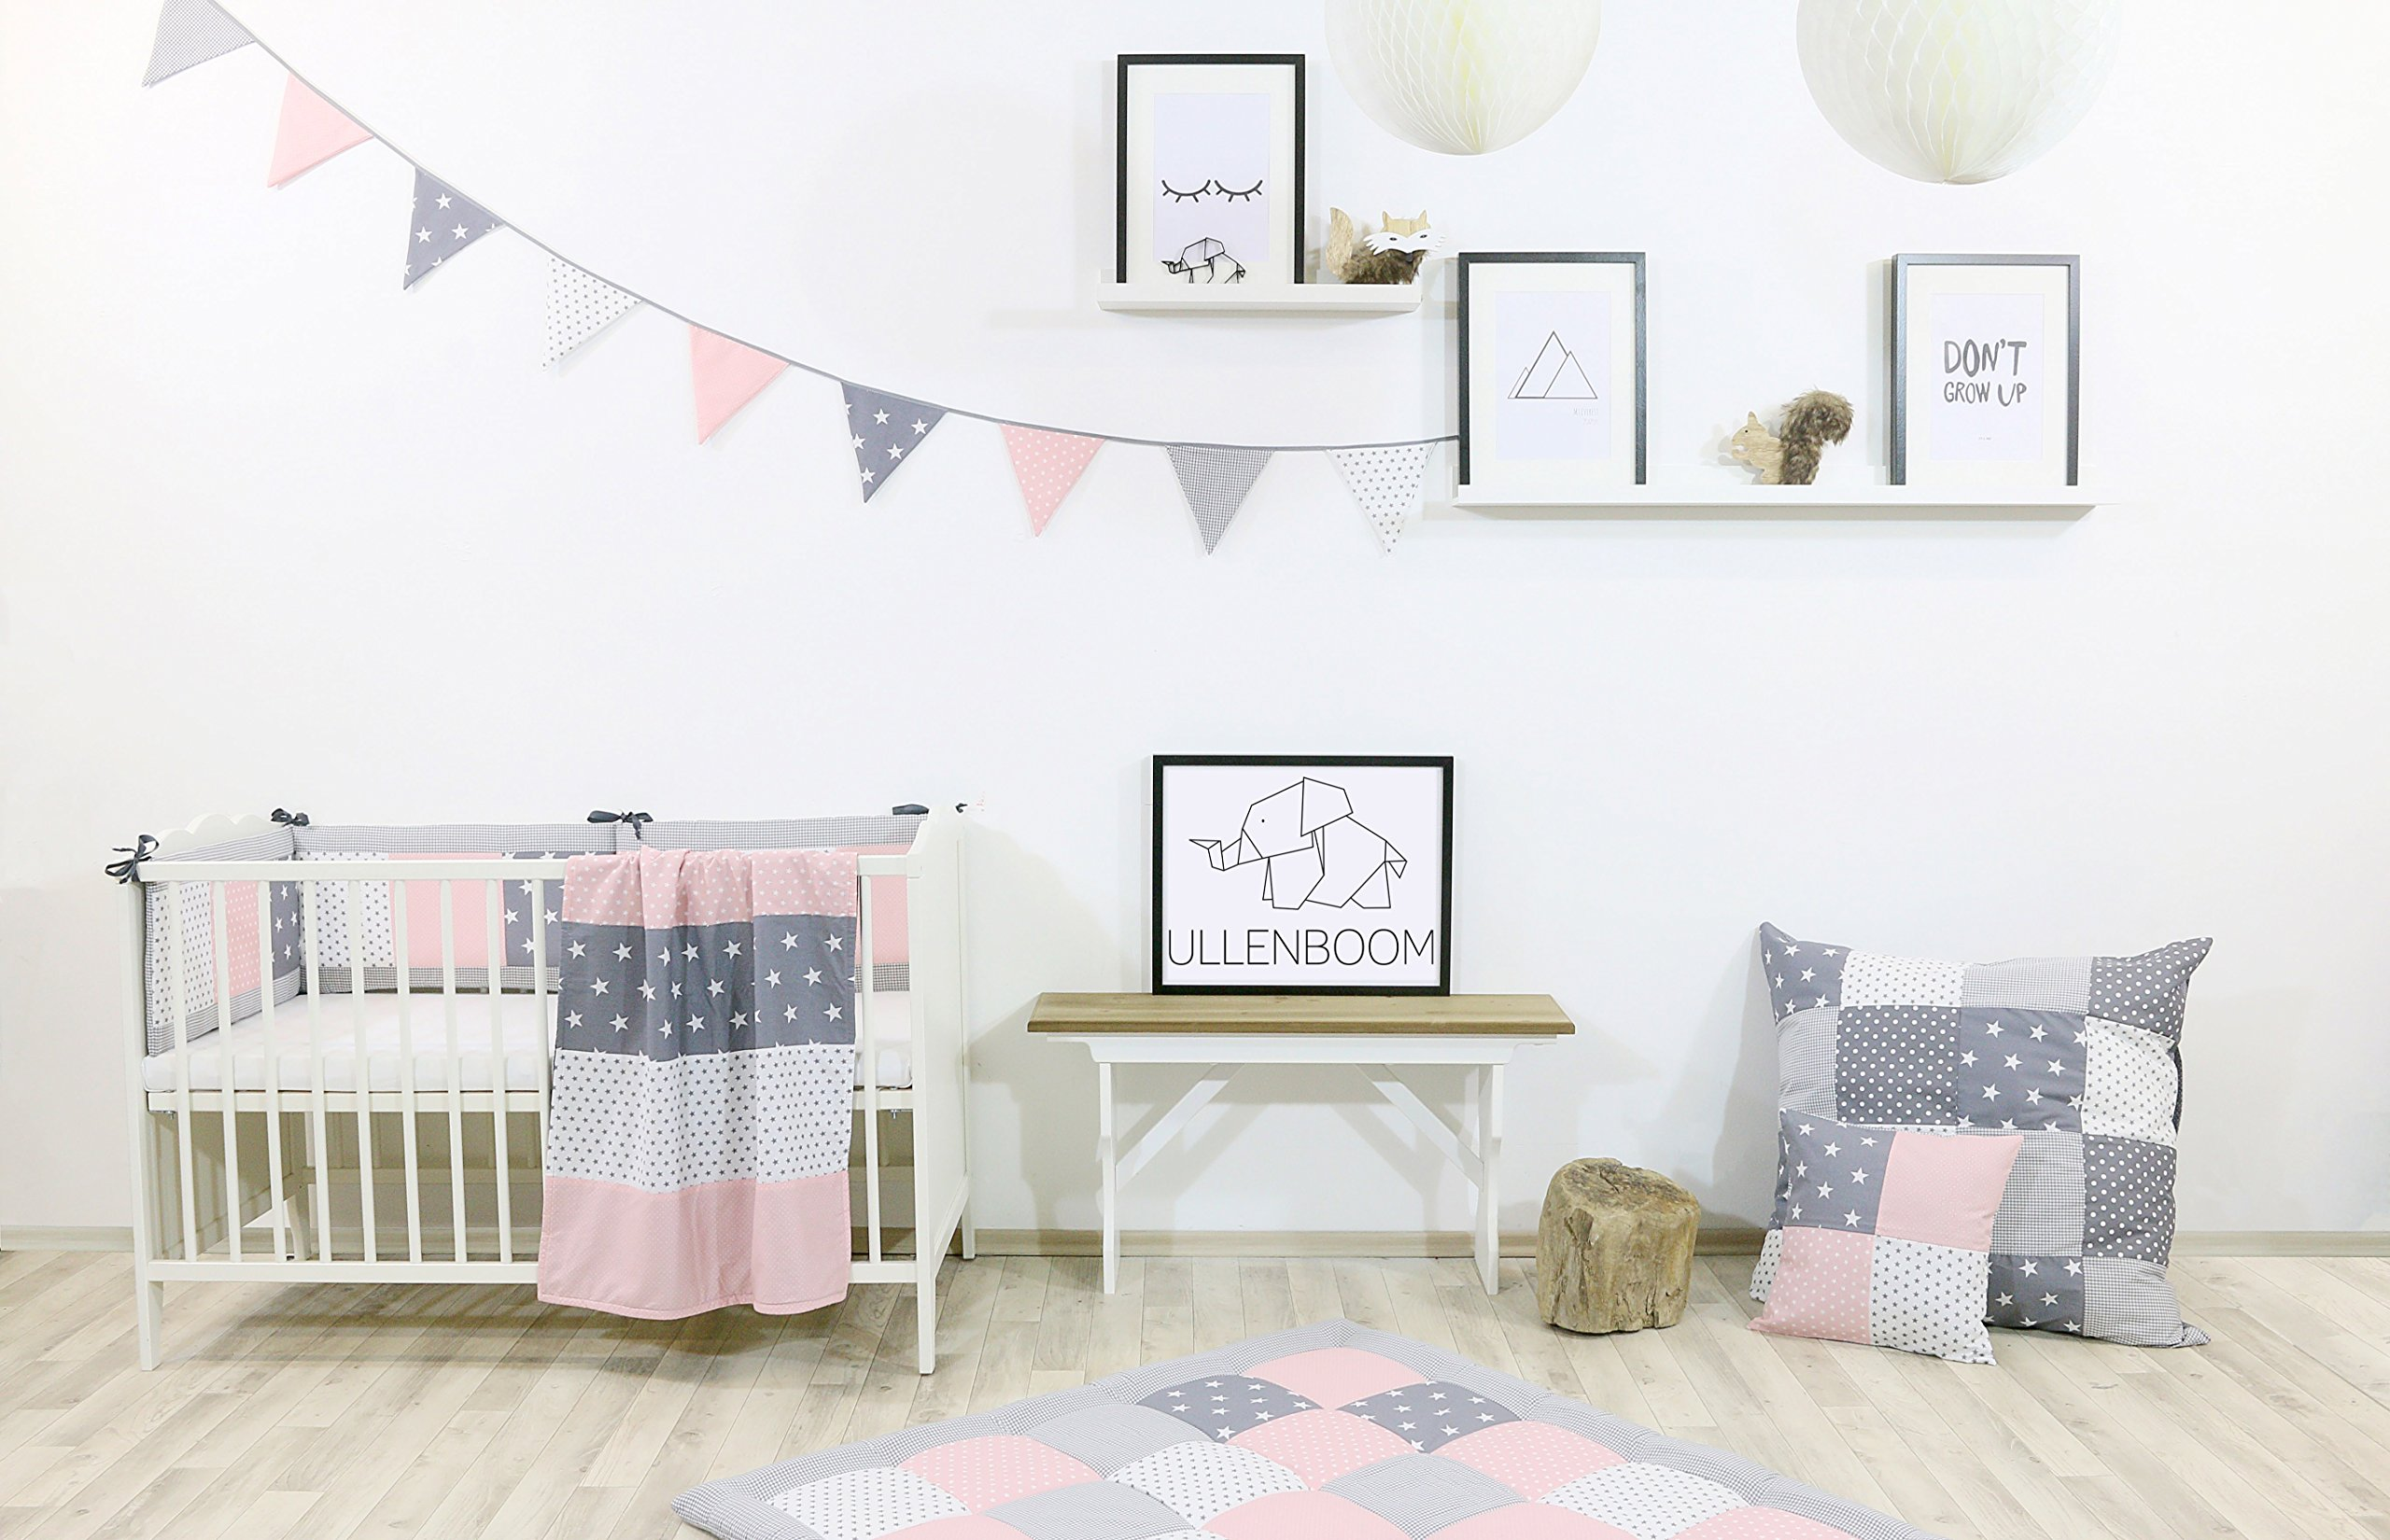 ULLENBOOM ® Bumper - Pink Grey (400 x 30 cm Baby playpen Bumper, Full Surround Bumper Pads for 100 x 100 cm playpen) ULLENBOOM This 400 x 30 cm patchwork bumper serves as a protective insert and surround for 100 x 100 cm playpens, to provide babies with protection - especially head protection - from playpen bars The sizes 200 x 30 cm and 400 x 30 cm (full surround) are for playpens - the 'full surround' bumper comes in two sections. ULLENBOOM  also offers additional sizes for 140 x 70 cm and 120 x 60 cm cots These bumpers can be washed at 30 °C and the materials used are certified according to the Oeko-Tex standard (tested for harmful substances, hypoallergenic); smooth outer fabric: 100% cotton (Oeko-Tex); soft, thick wadding: 100% polyester (Oeko-Tex) 3